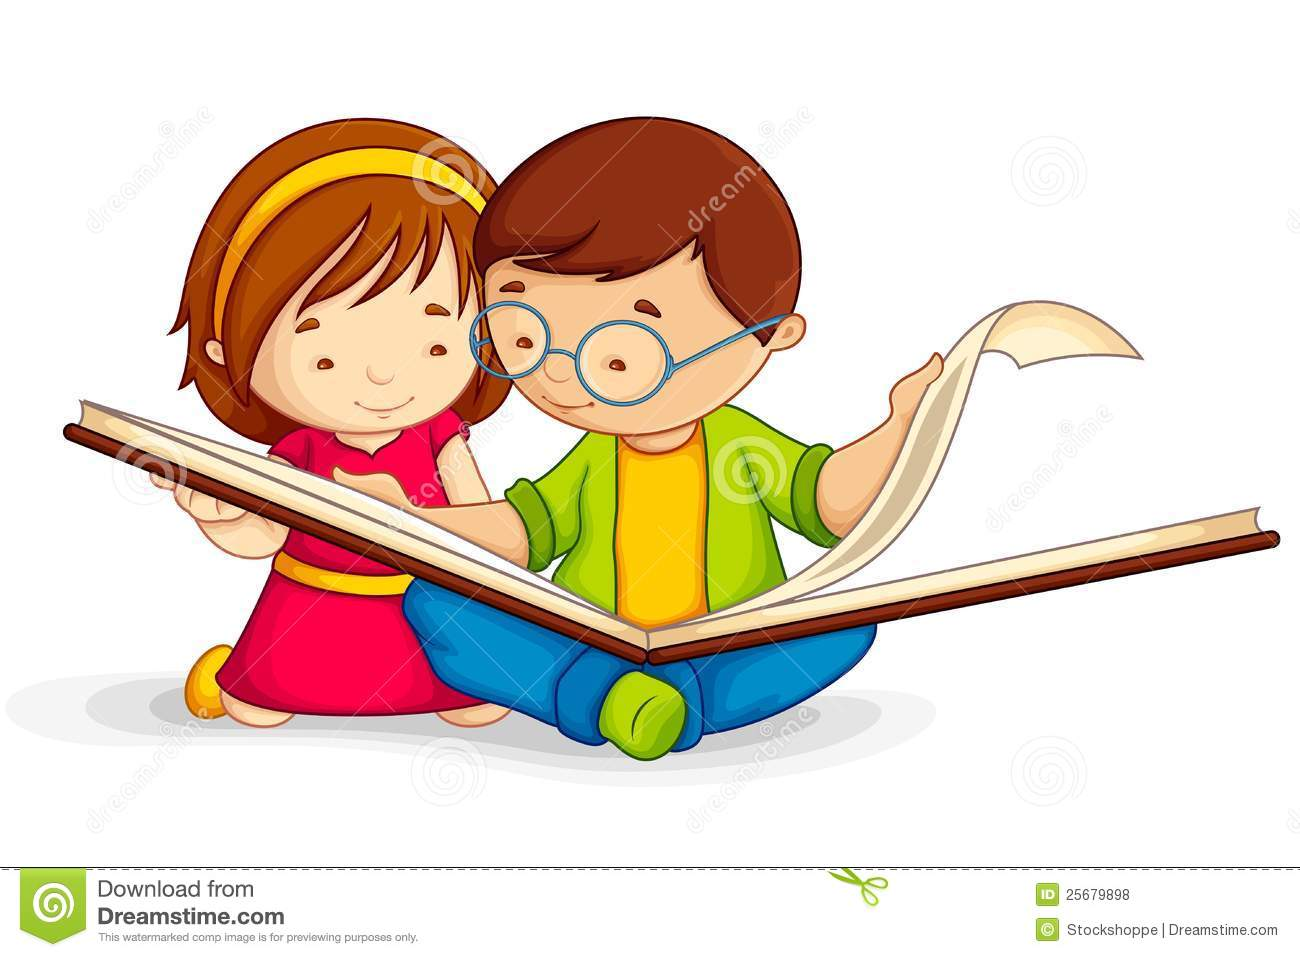 Children reading a book clipart.